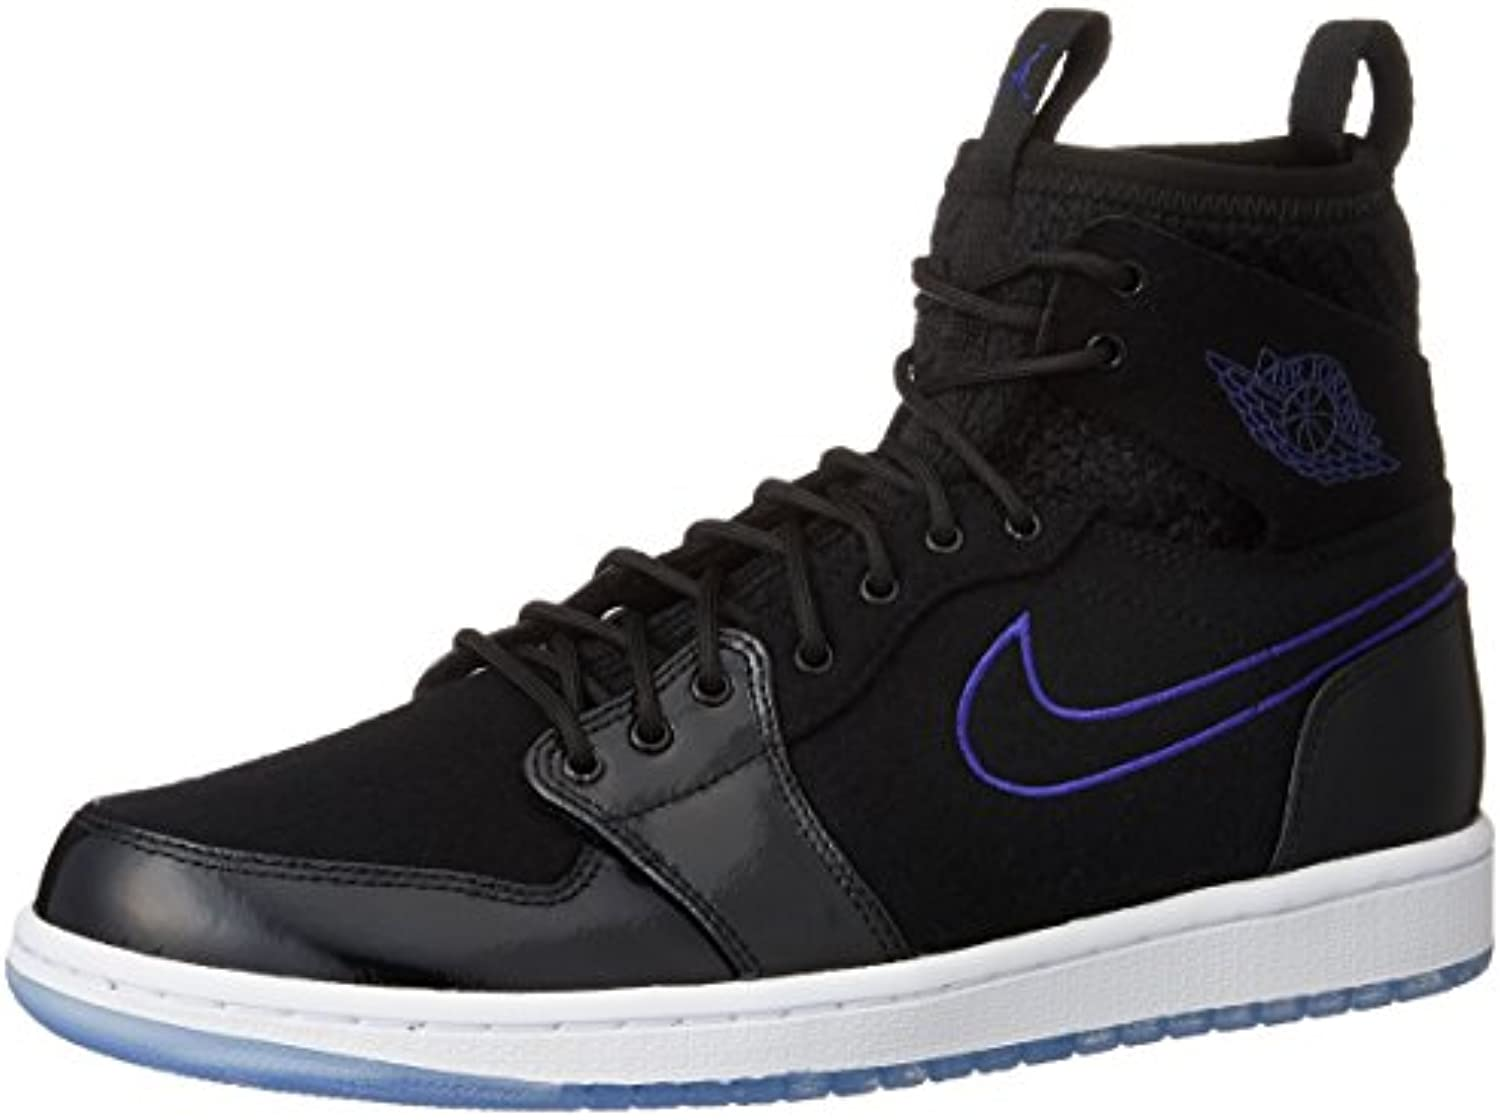 Nike Air Jordan 1 Retro Ultra High   844700002